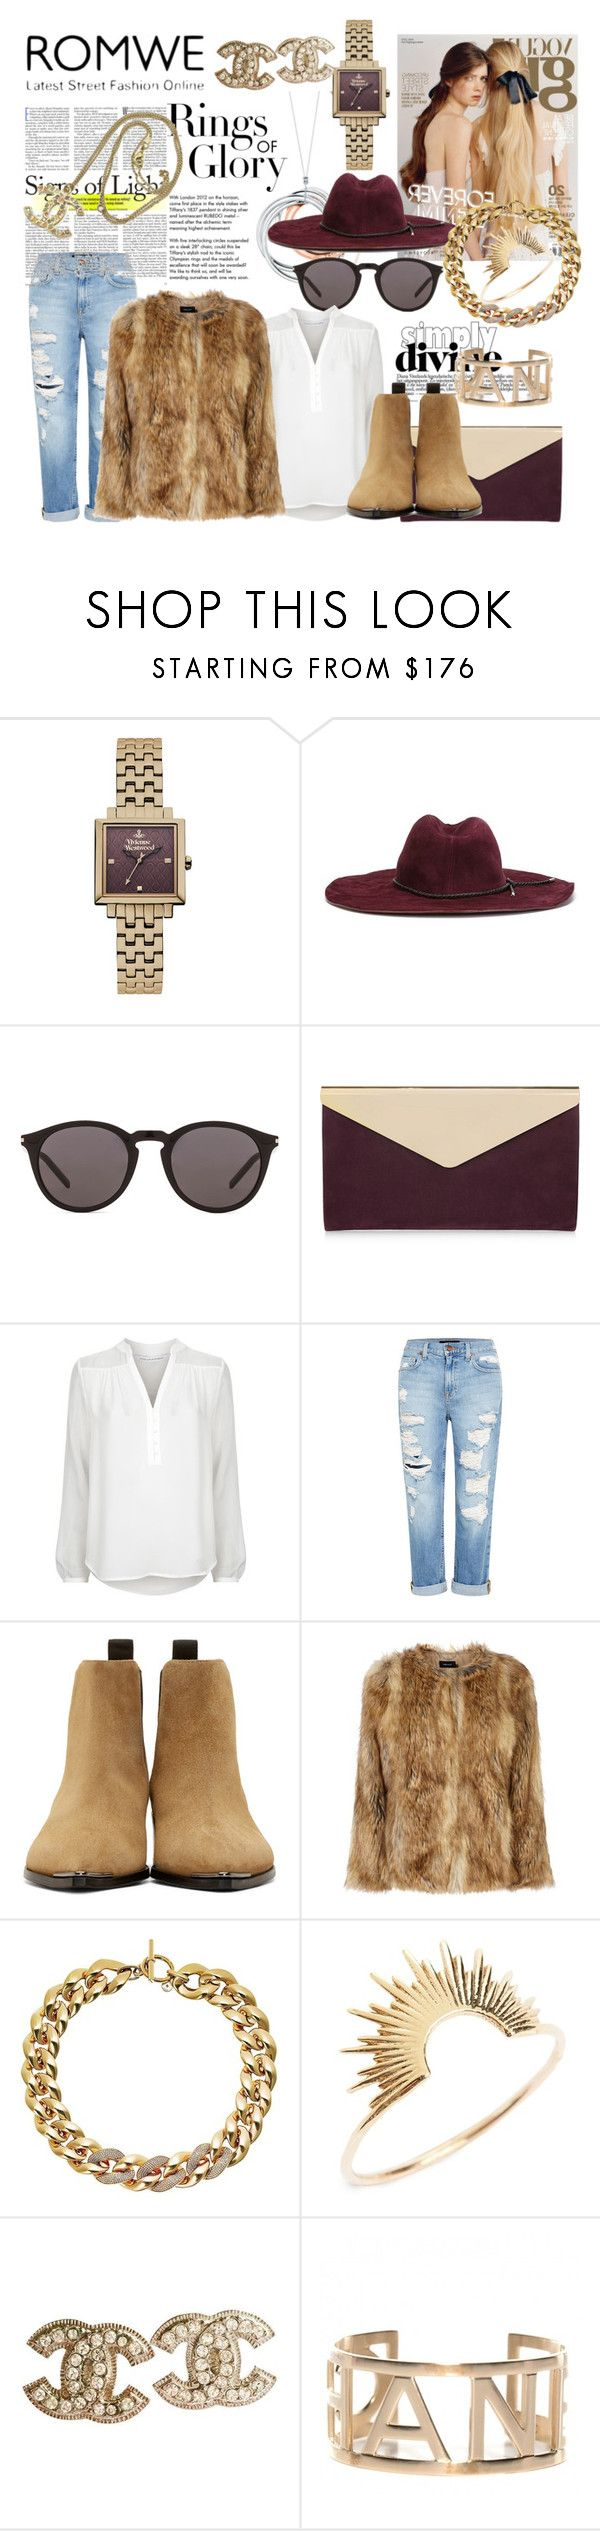 Untitled #175 by denisa-marcu on Polyvore featuring Diane Von Furstenberg, Karen Millen, Genetic Denim, Acne Studios, Jimmy Choo, Michael Kors, Vivienne Westwood, Chanel, Sarah & Sebastian and Emilio Pucci